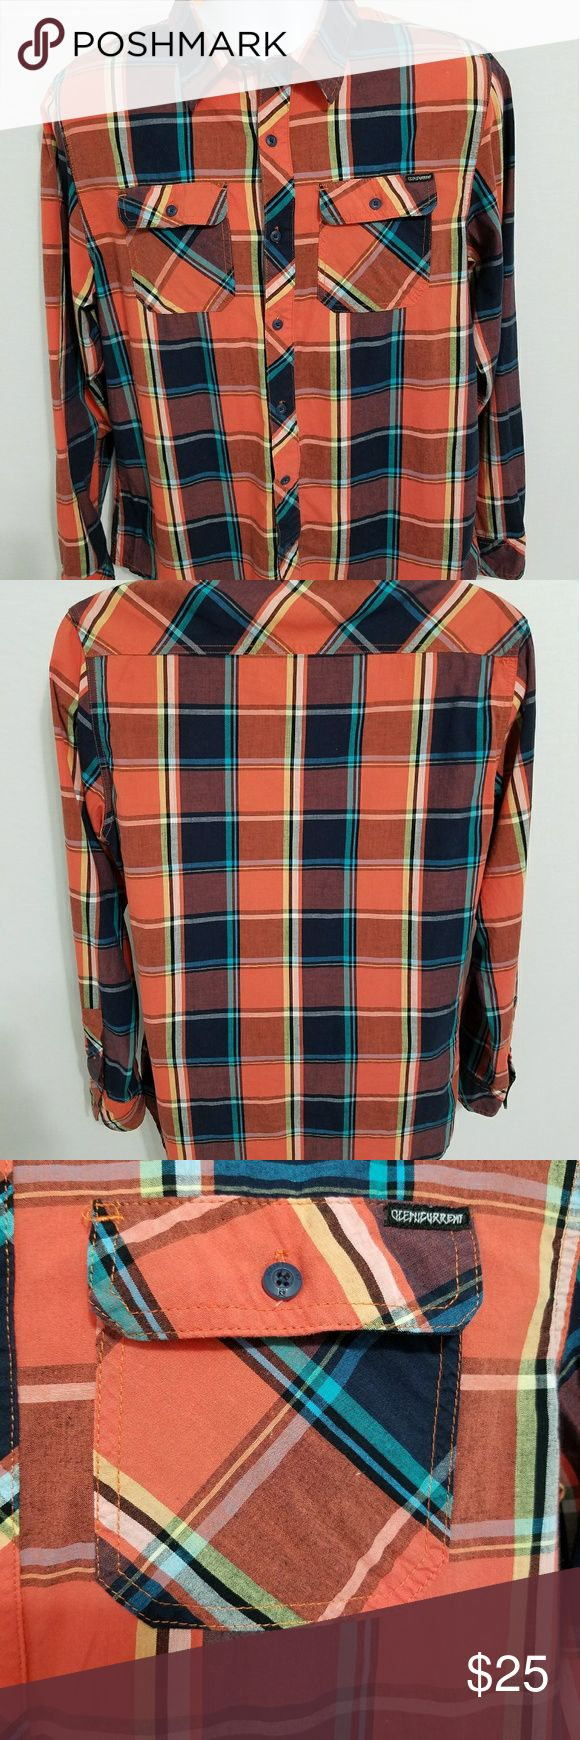 Ocean current plaid Lumberjack shirt medium Men's and you say ocean current plaid Lumberjack shirt size medium hundred percent cotton button-down casual shirt orange Navy white and some lighter blue. 22in armpit to armpit 28 in Long. Measurements are approximate feel free to ask any questions Ocean Current Shirts Casual Button Down Shirts